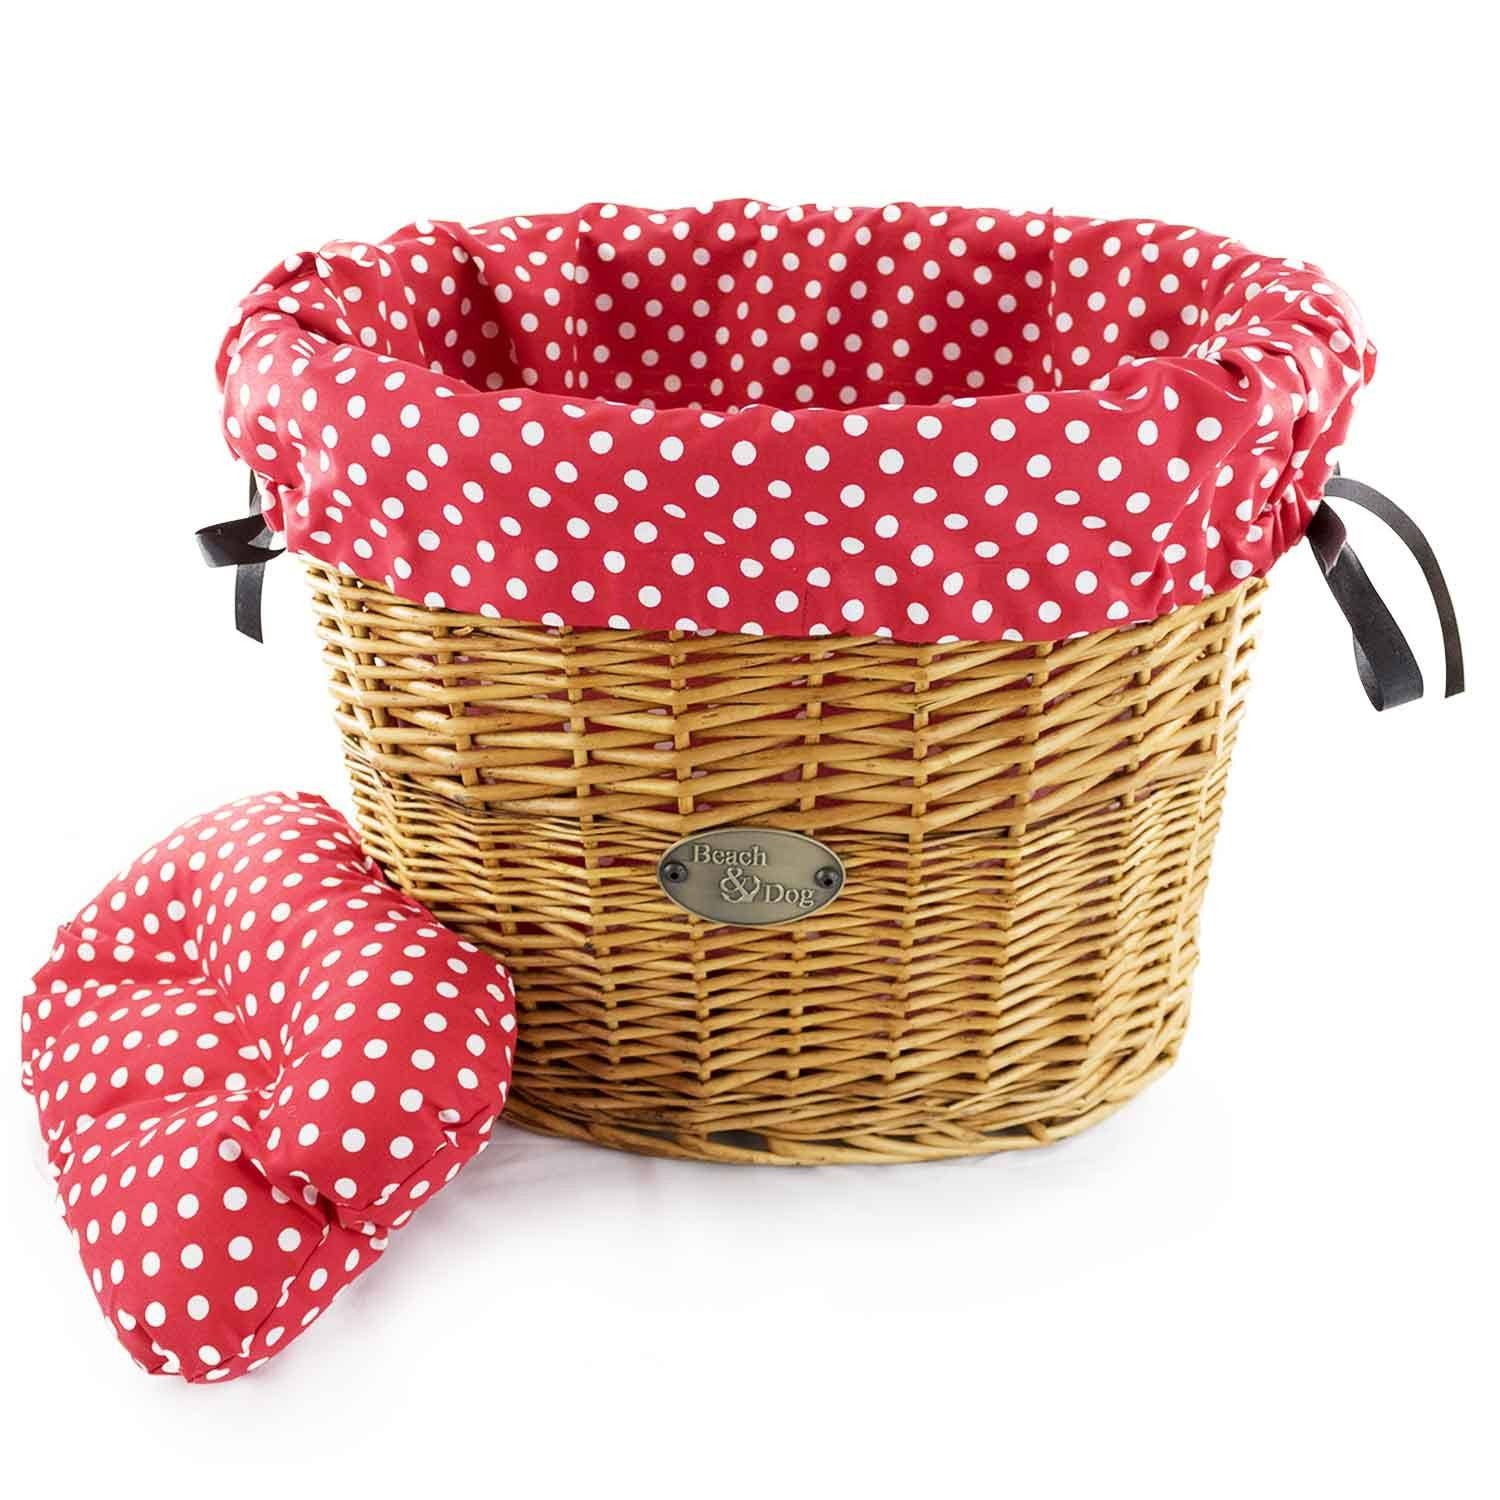 Strawberry shortcake basket liner - Beach & Dog Co